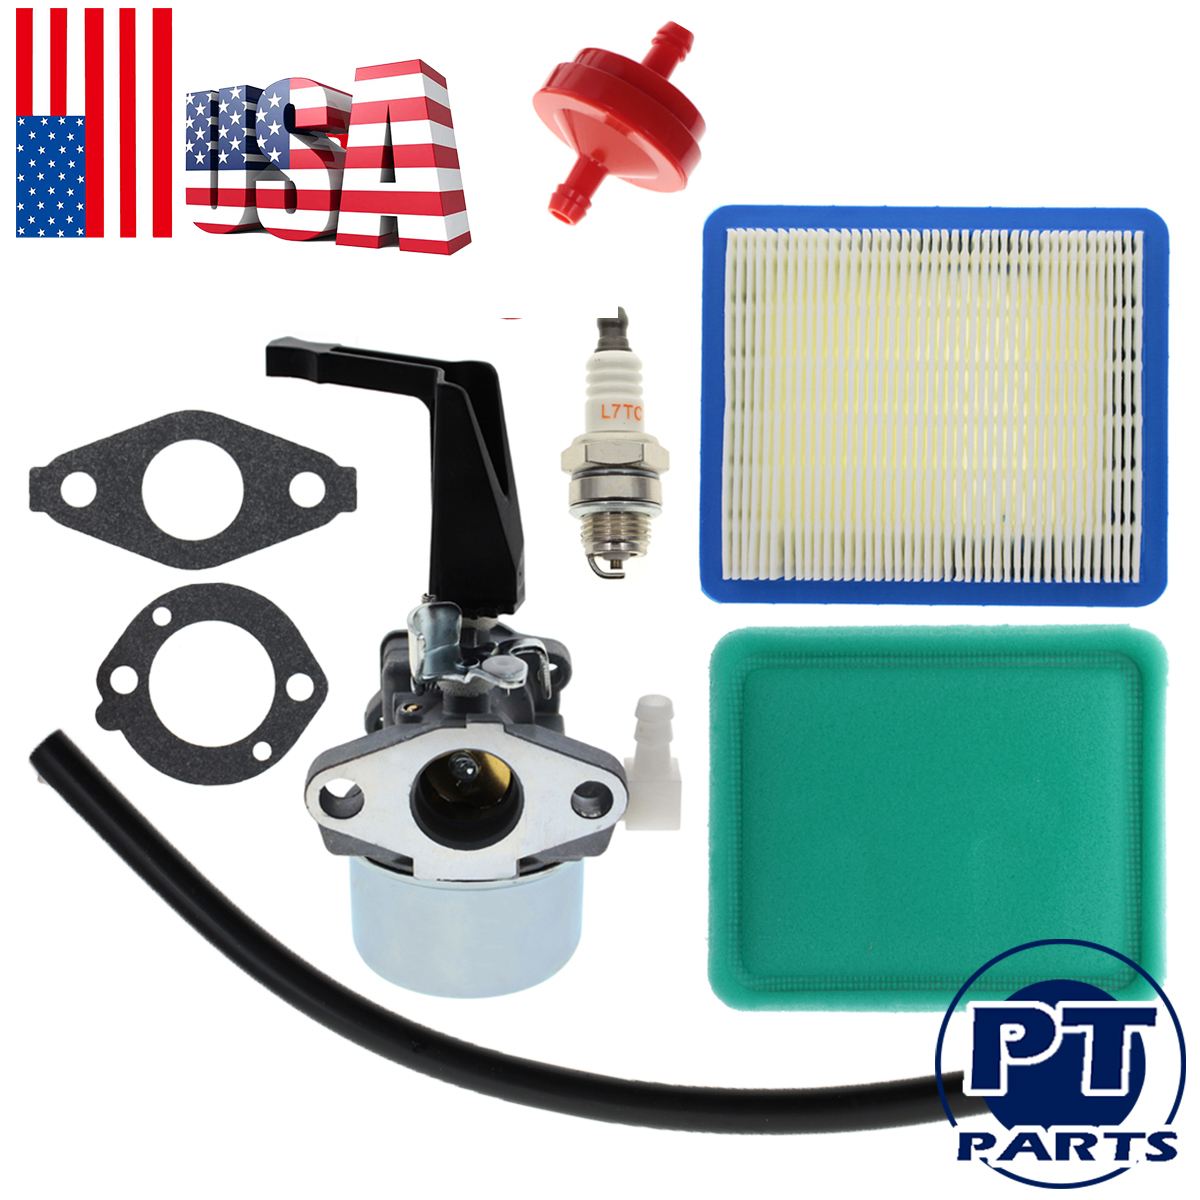 Tiller Carburetor Carb Replacement with Gasket Kit for 696065 Briggs /& Stratton